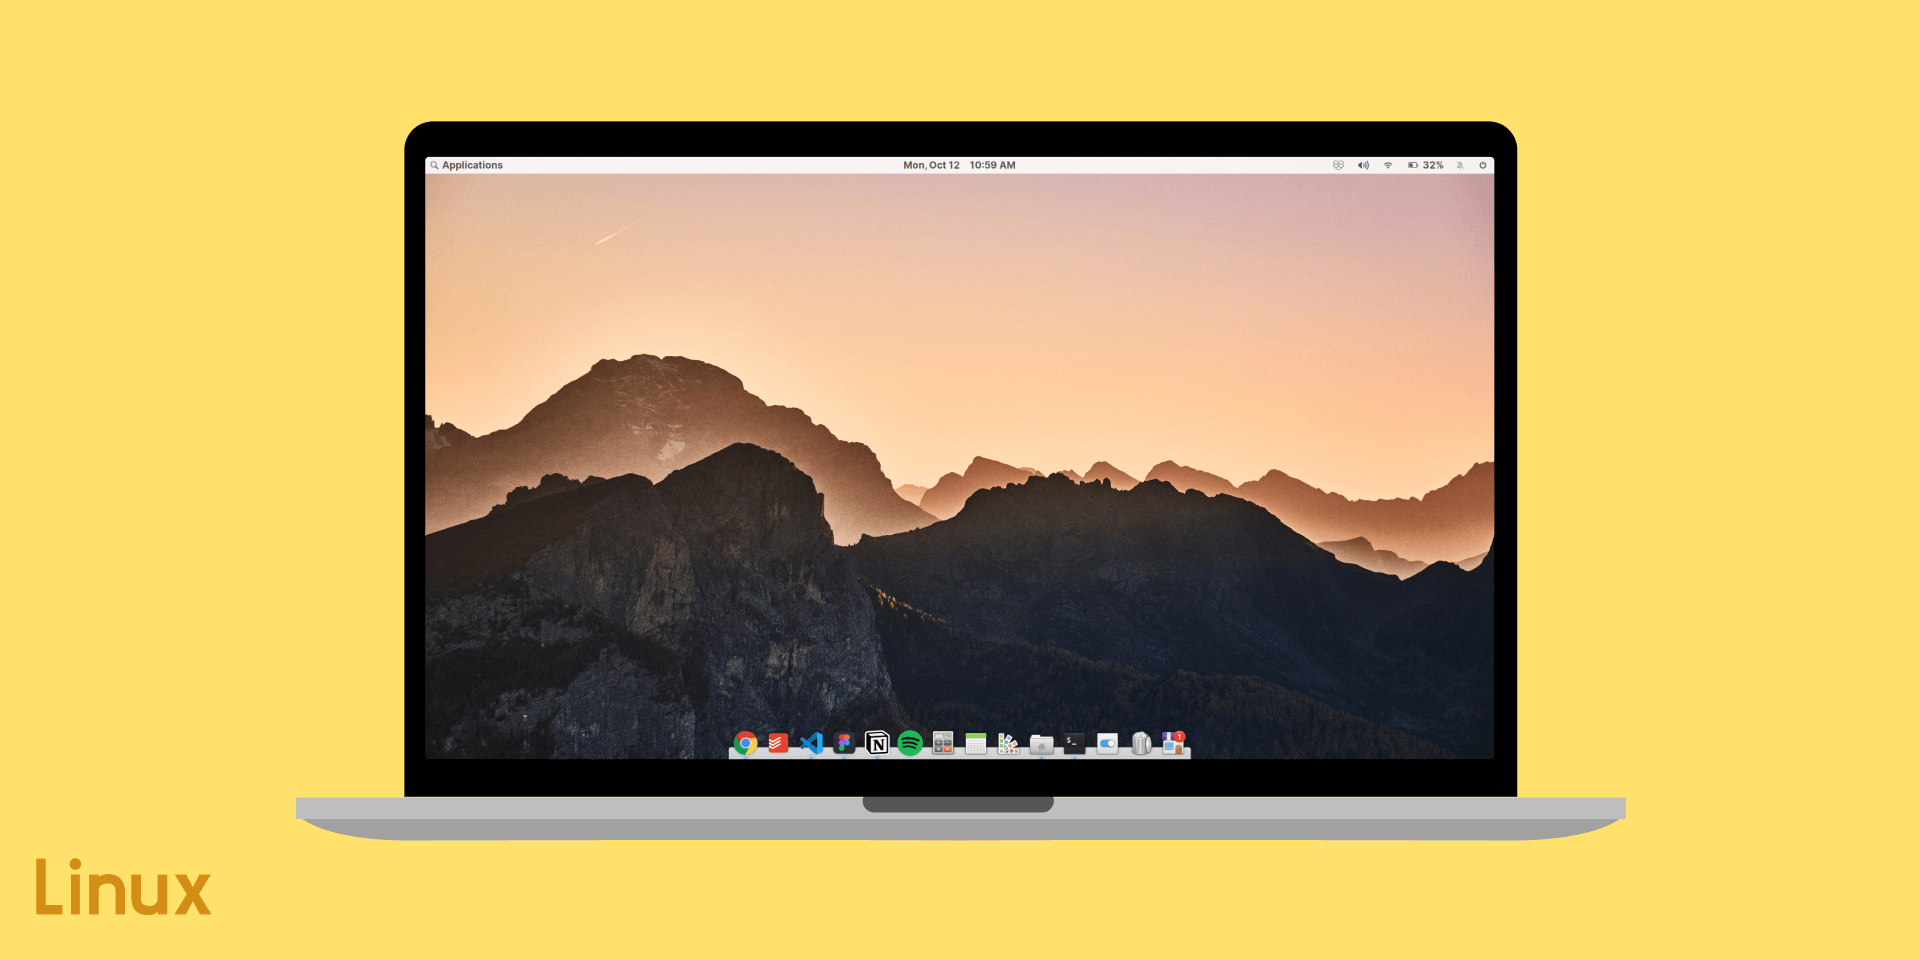 elementary OS Review: 8 Months later